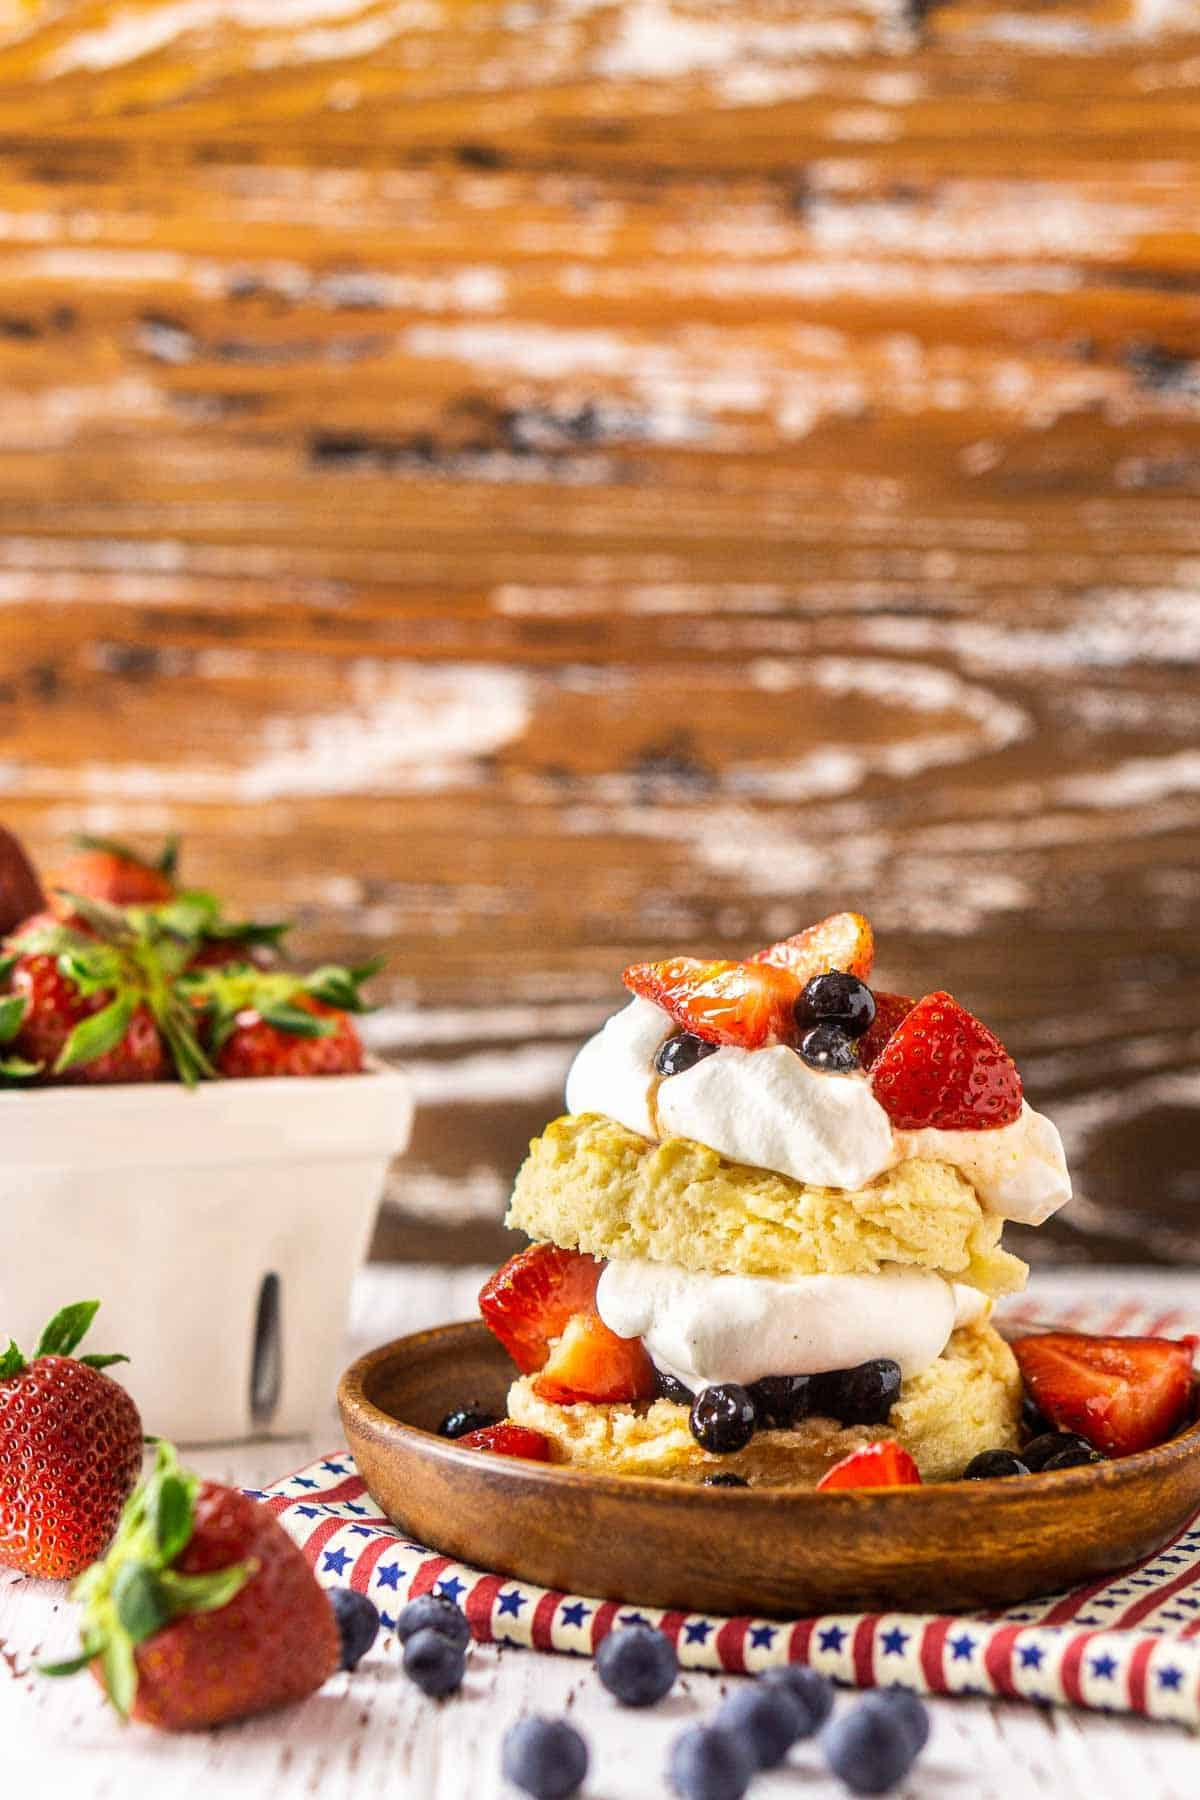 A blueberry-strawberry shortcake on a wooden plate and patriotic clothe with berries surrounding it.